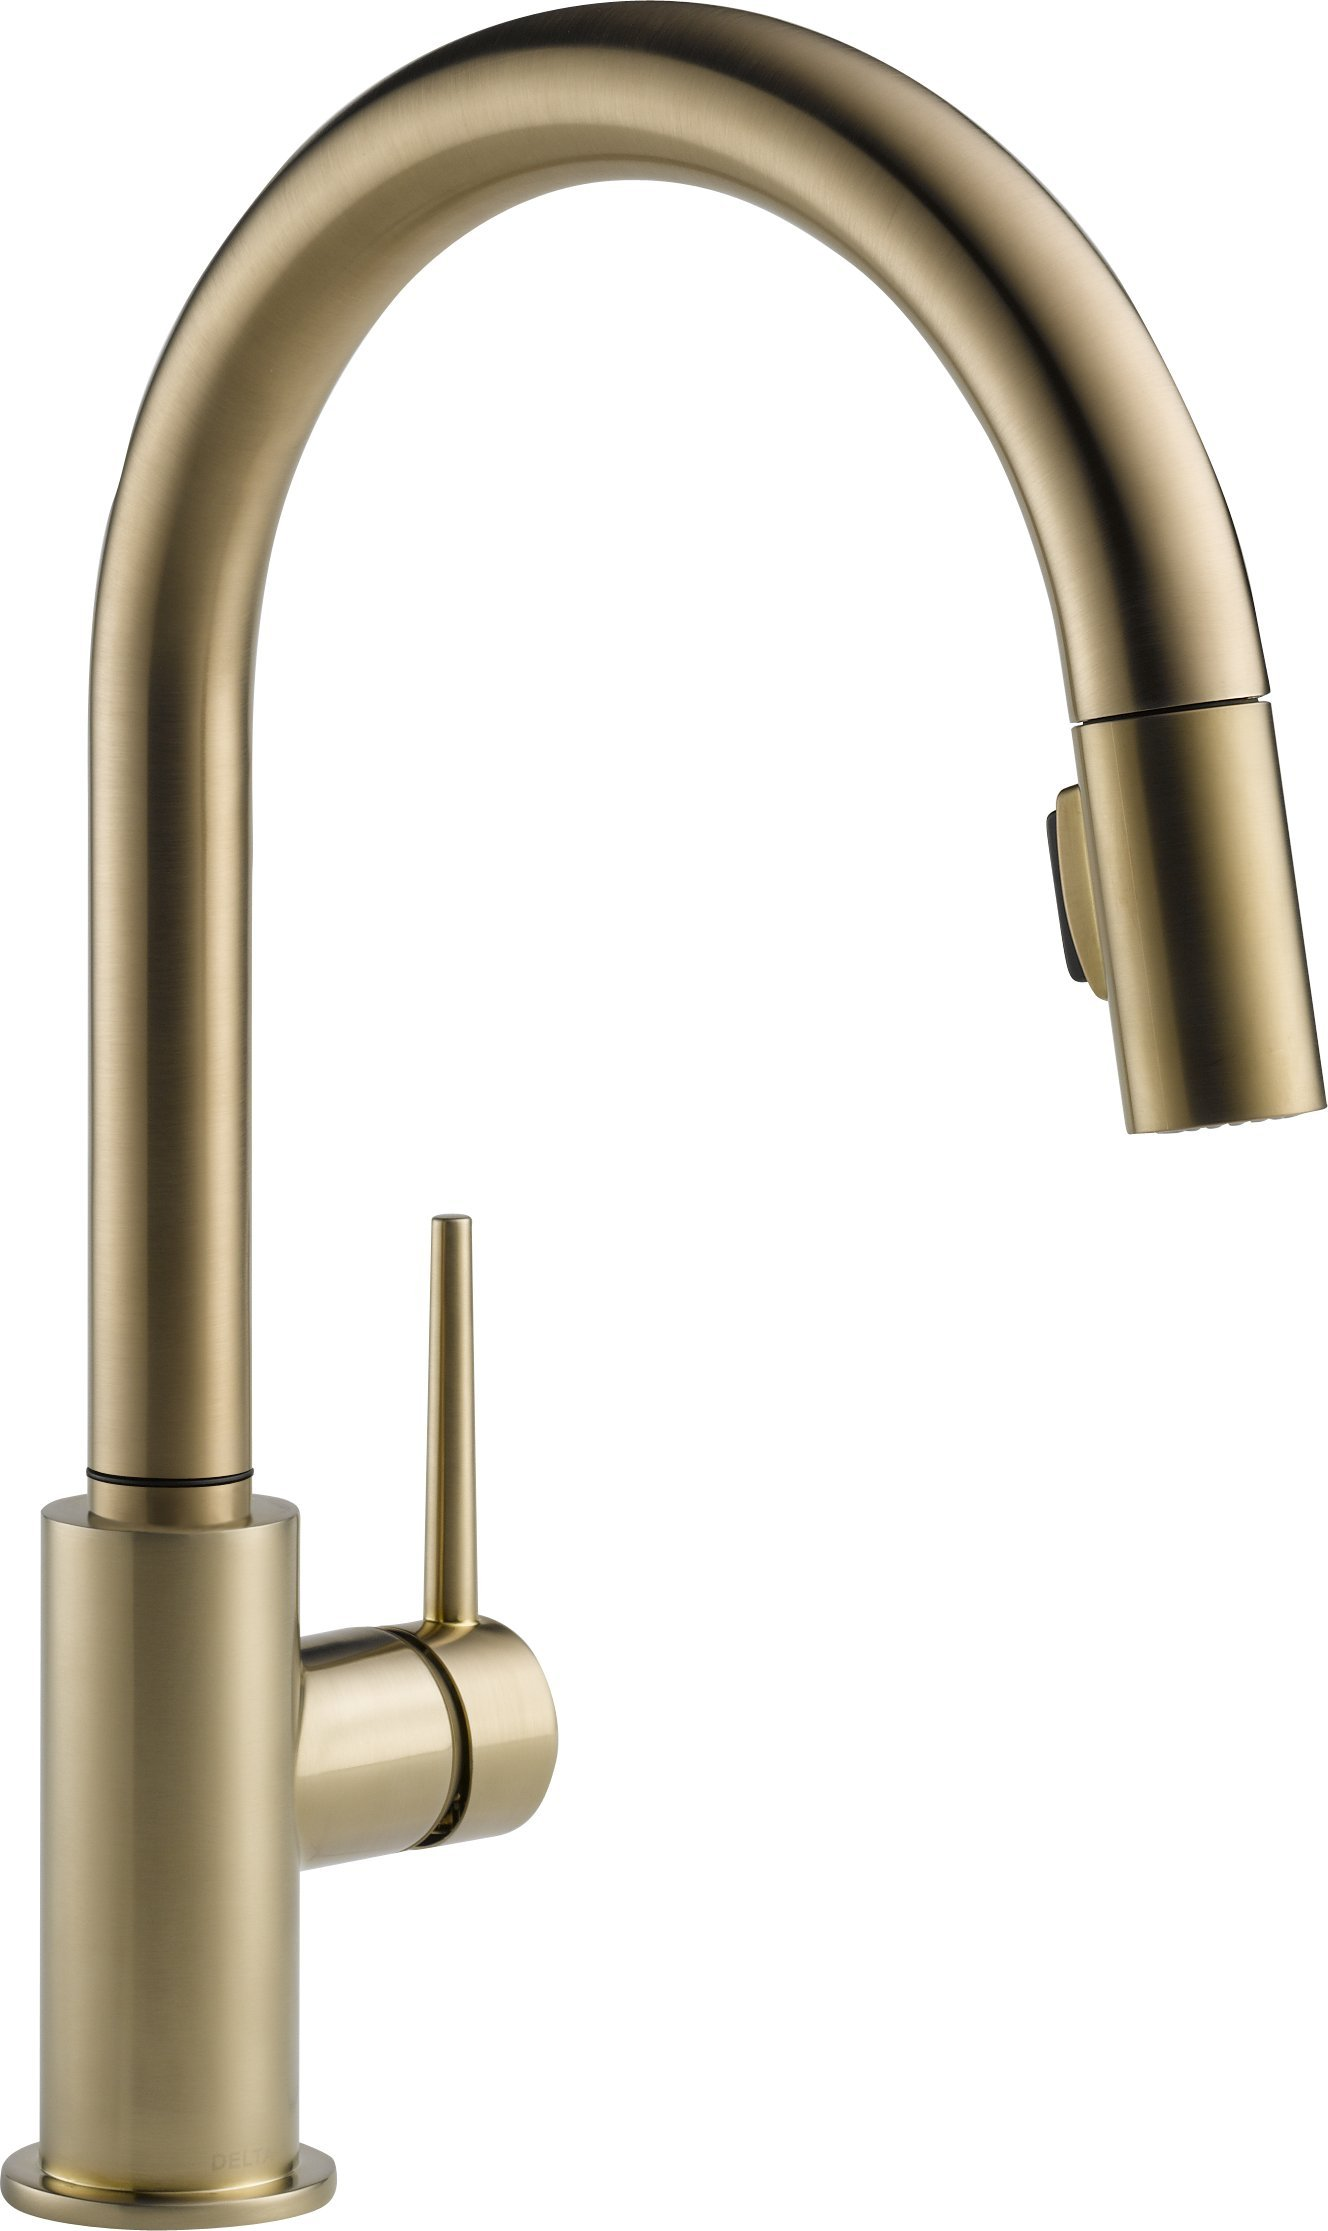 Delta Faucet 9159-CZ-DST Trinsic Single Handle Pull-Down Kitchen Faucet with Magnetic Docking, Champagne Bronze by DELTA FAUCET